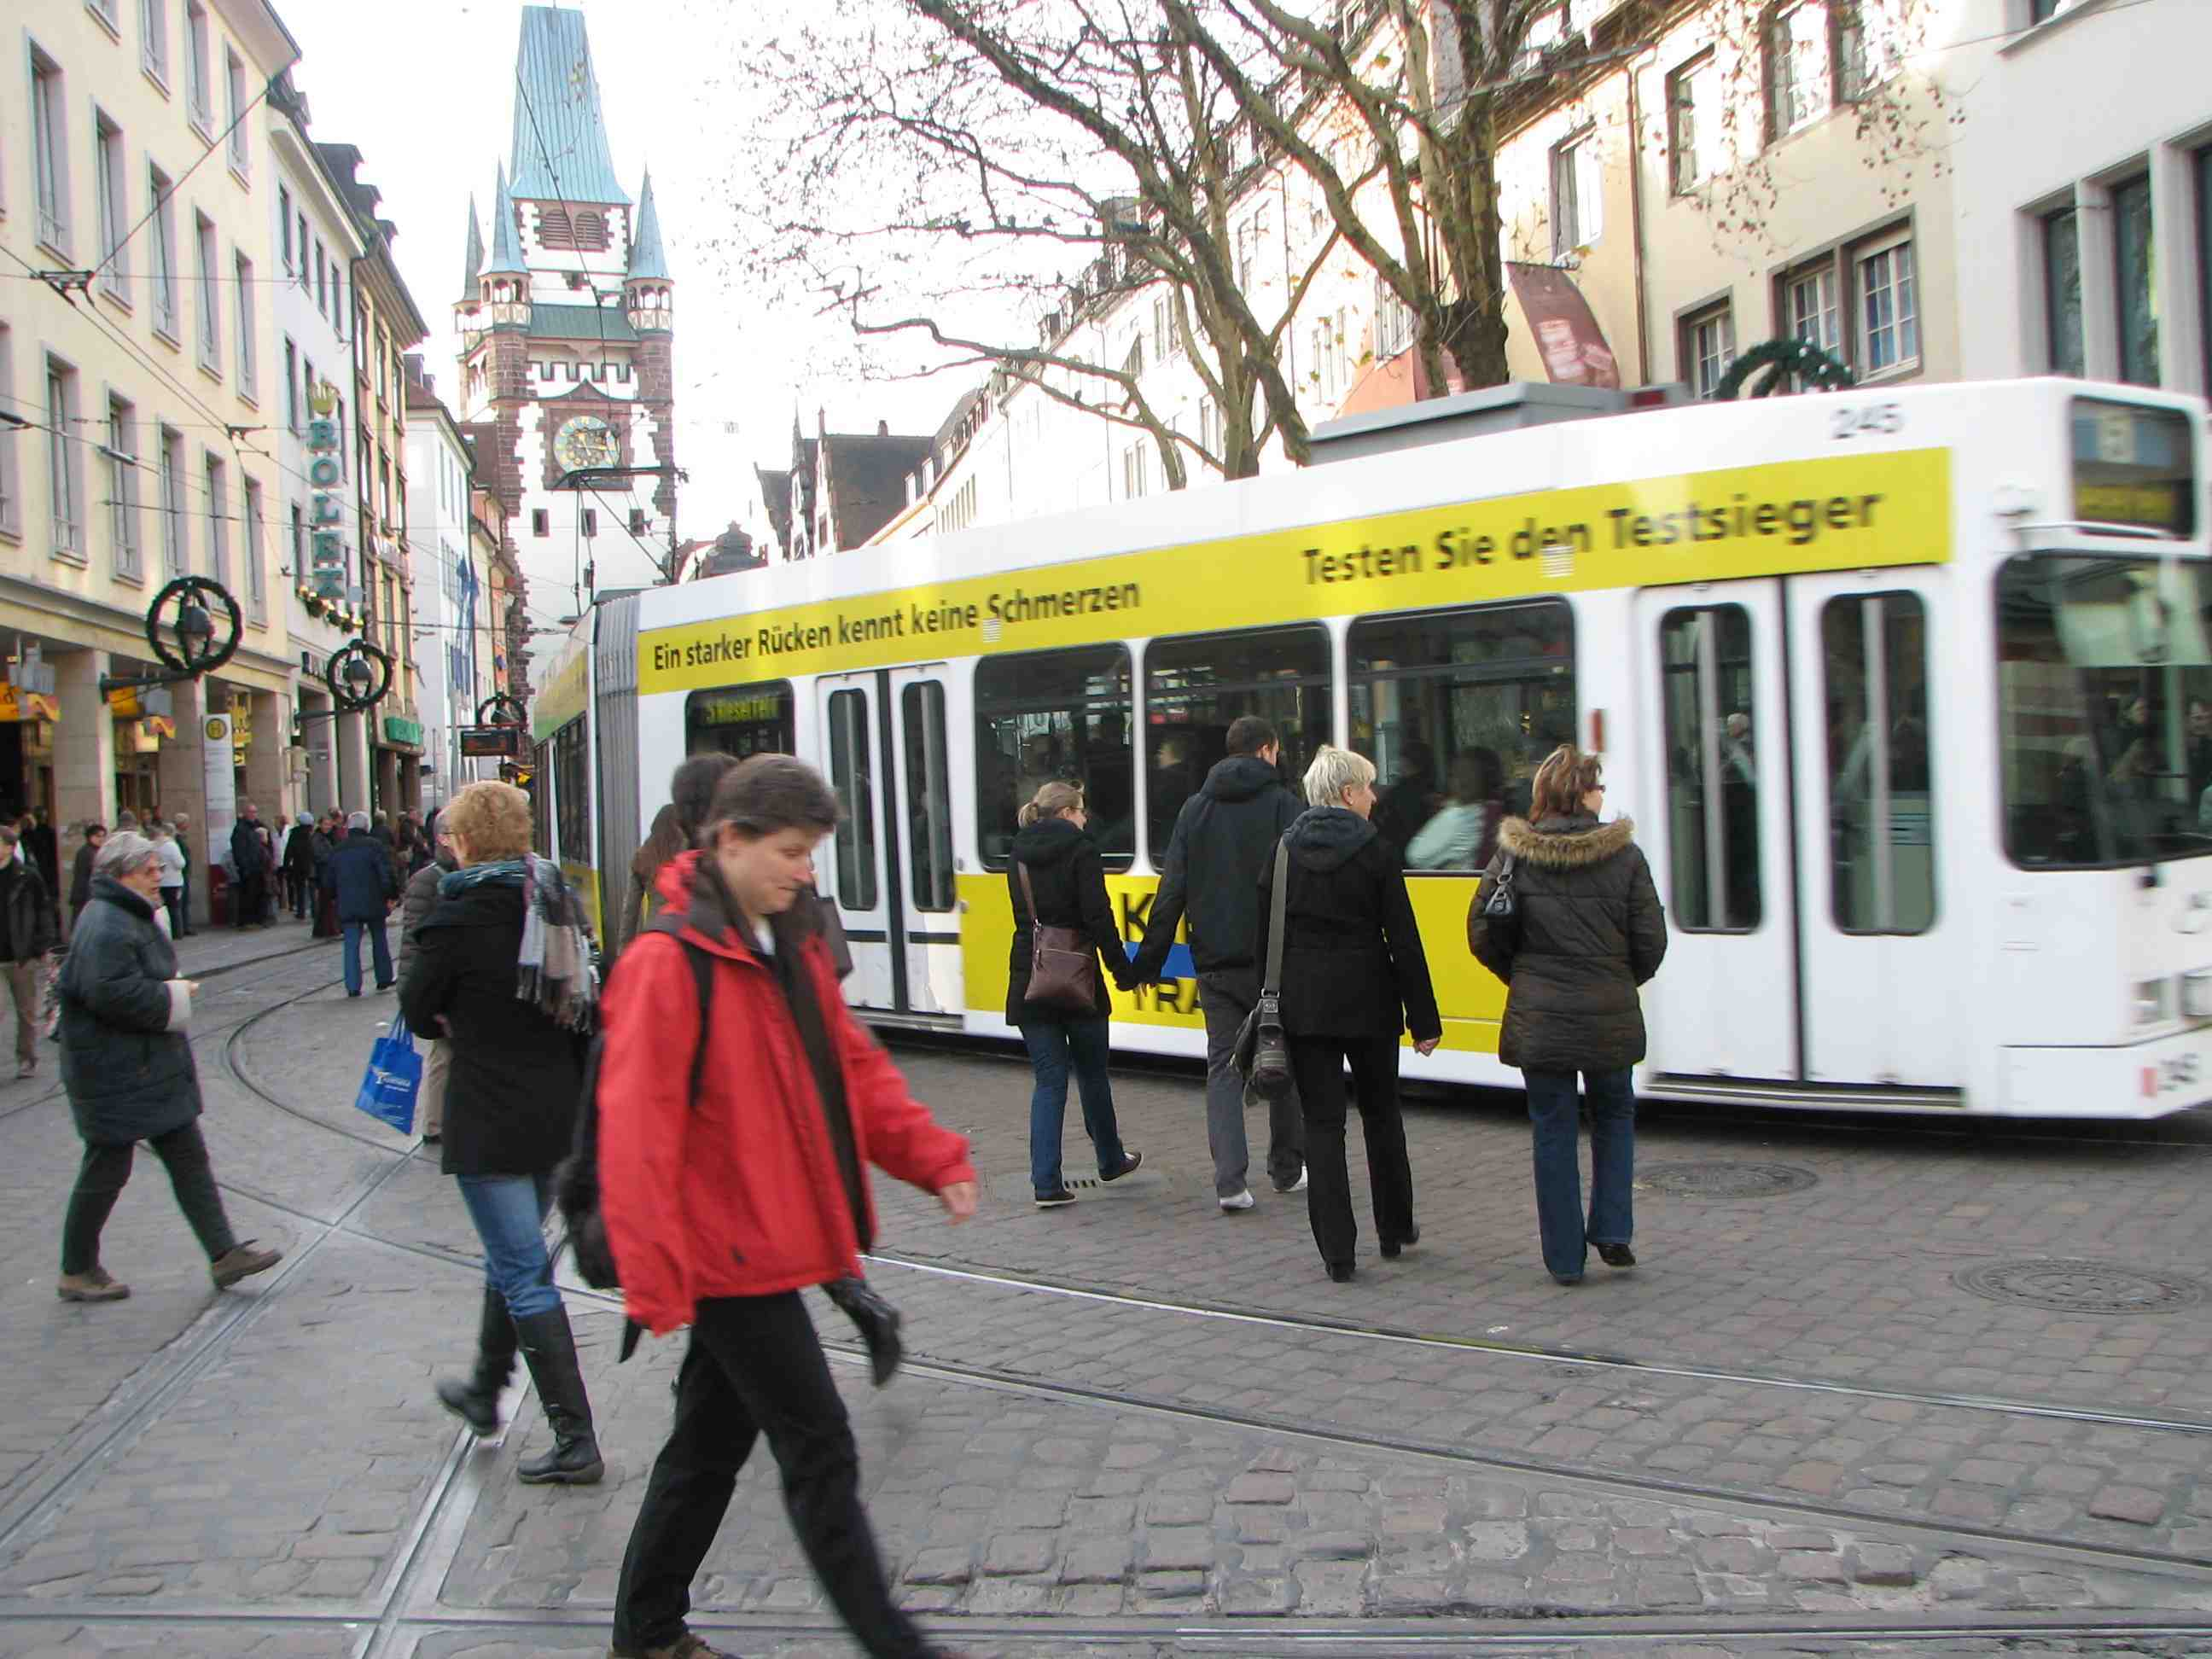 Light rail in Freiburg, Germany